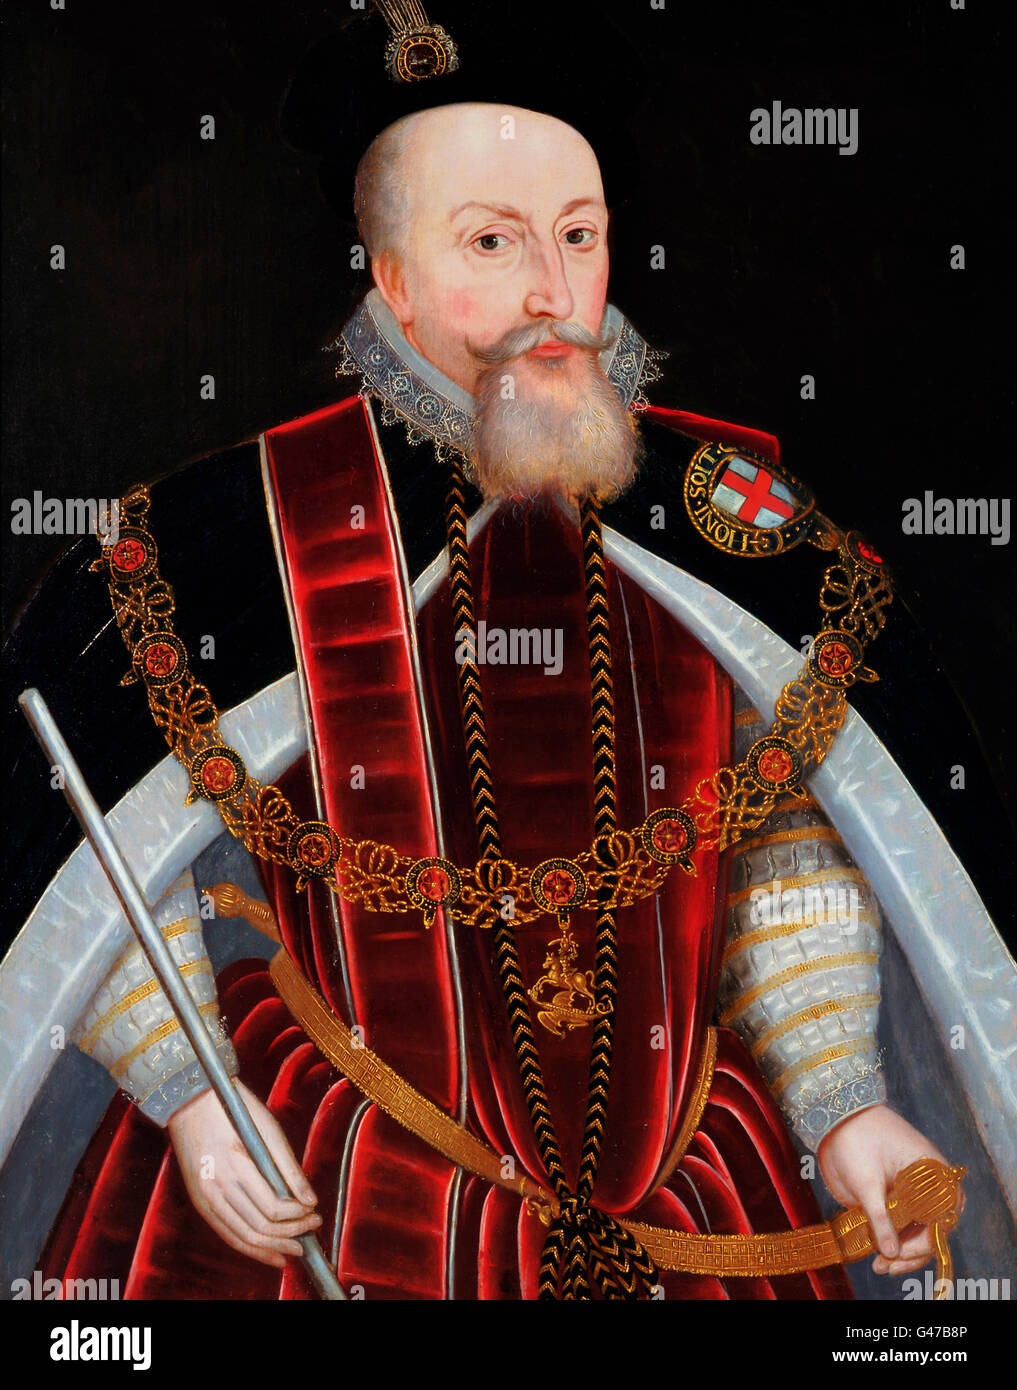 Robert Dudley, 1st Earl of Leicester , c.1595 - Stock Image